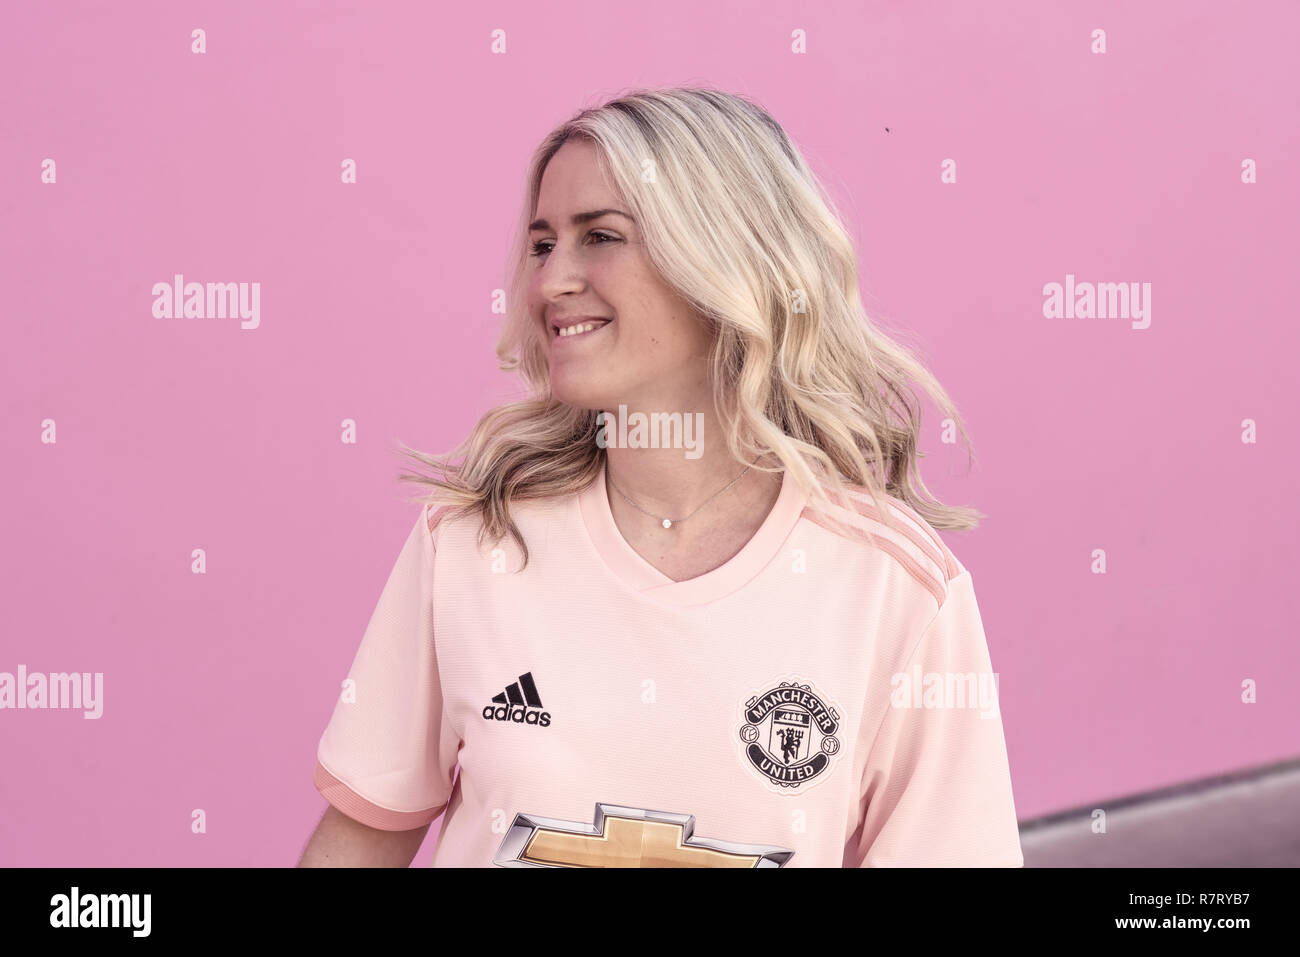 Manchester United Away Shirt 2018 19 Stock Photo Alamy